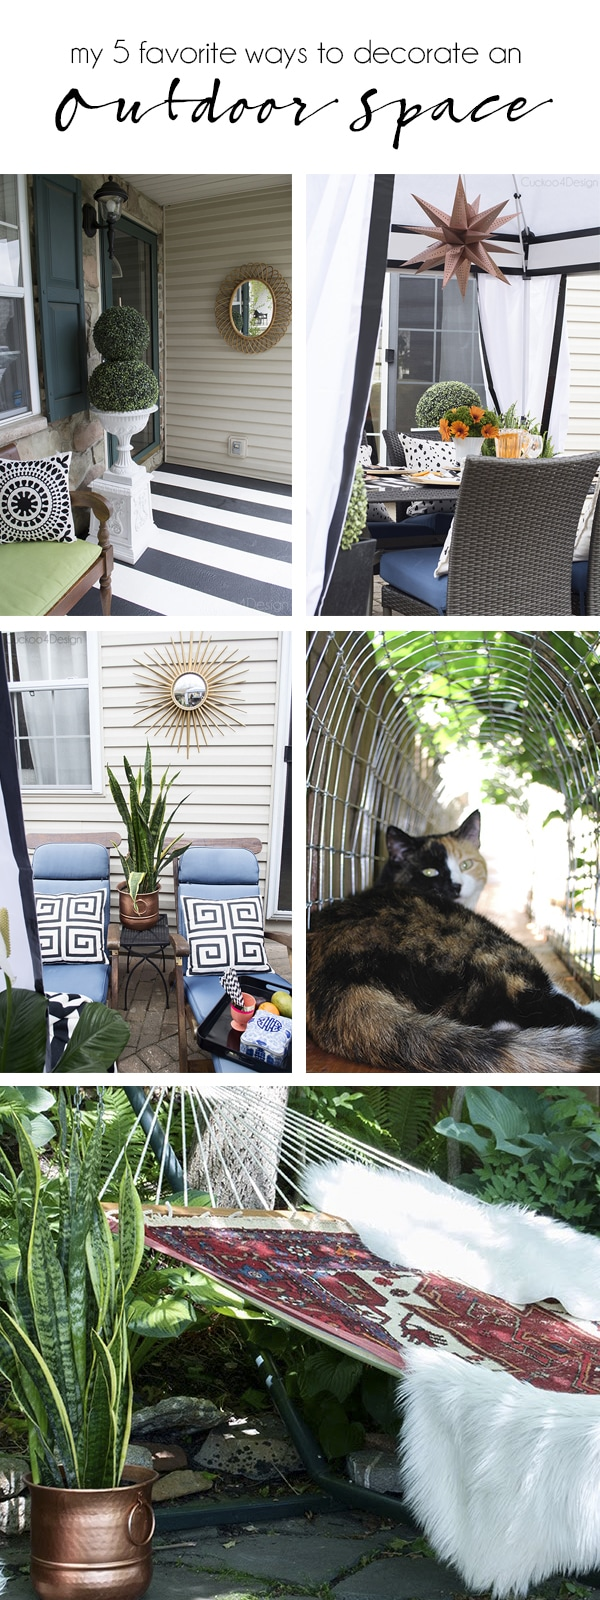 My 5 favorite Ways to Decorate an Outdoor Space - Cuckoo4Design